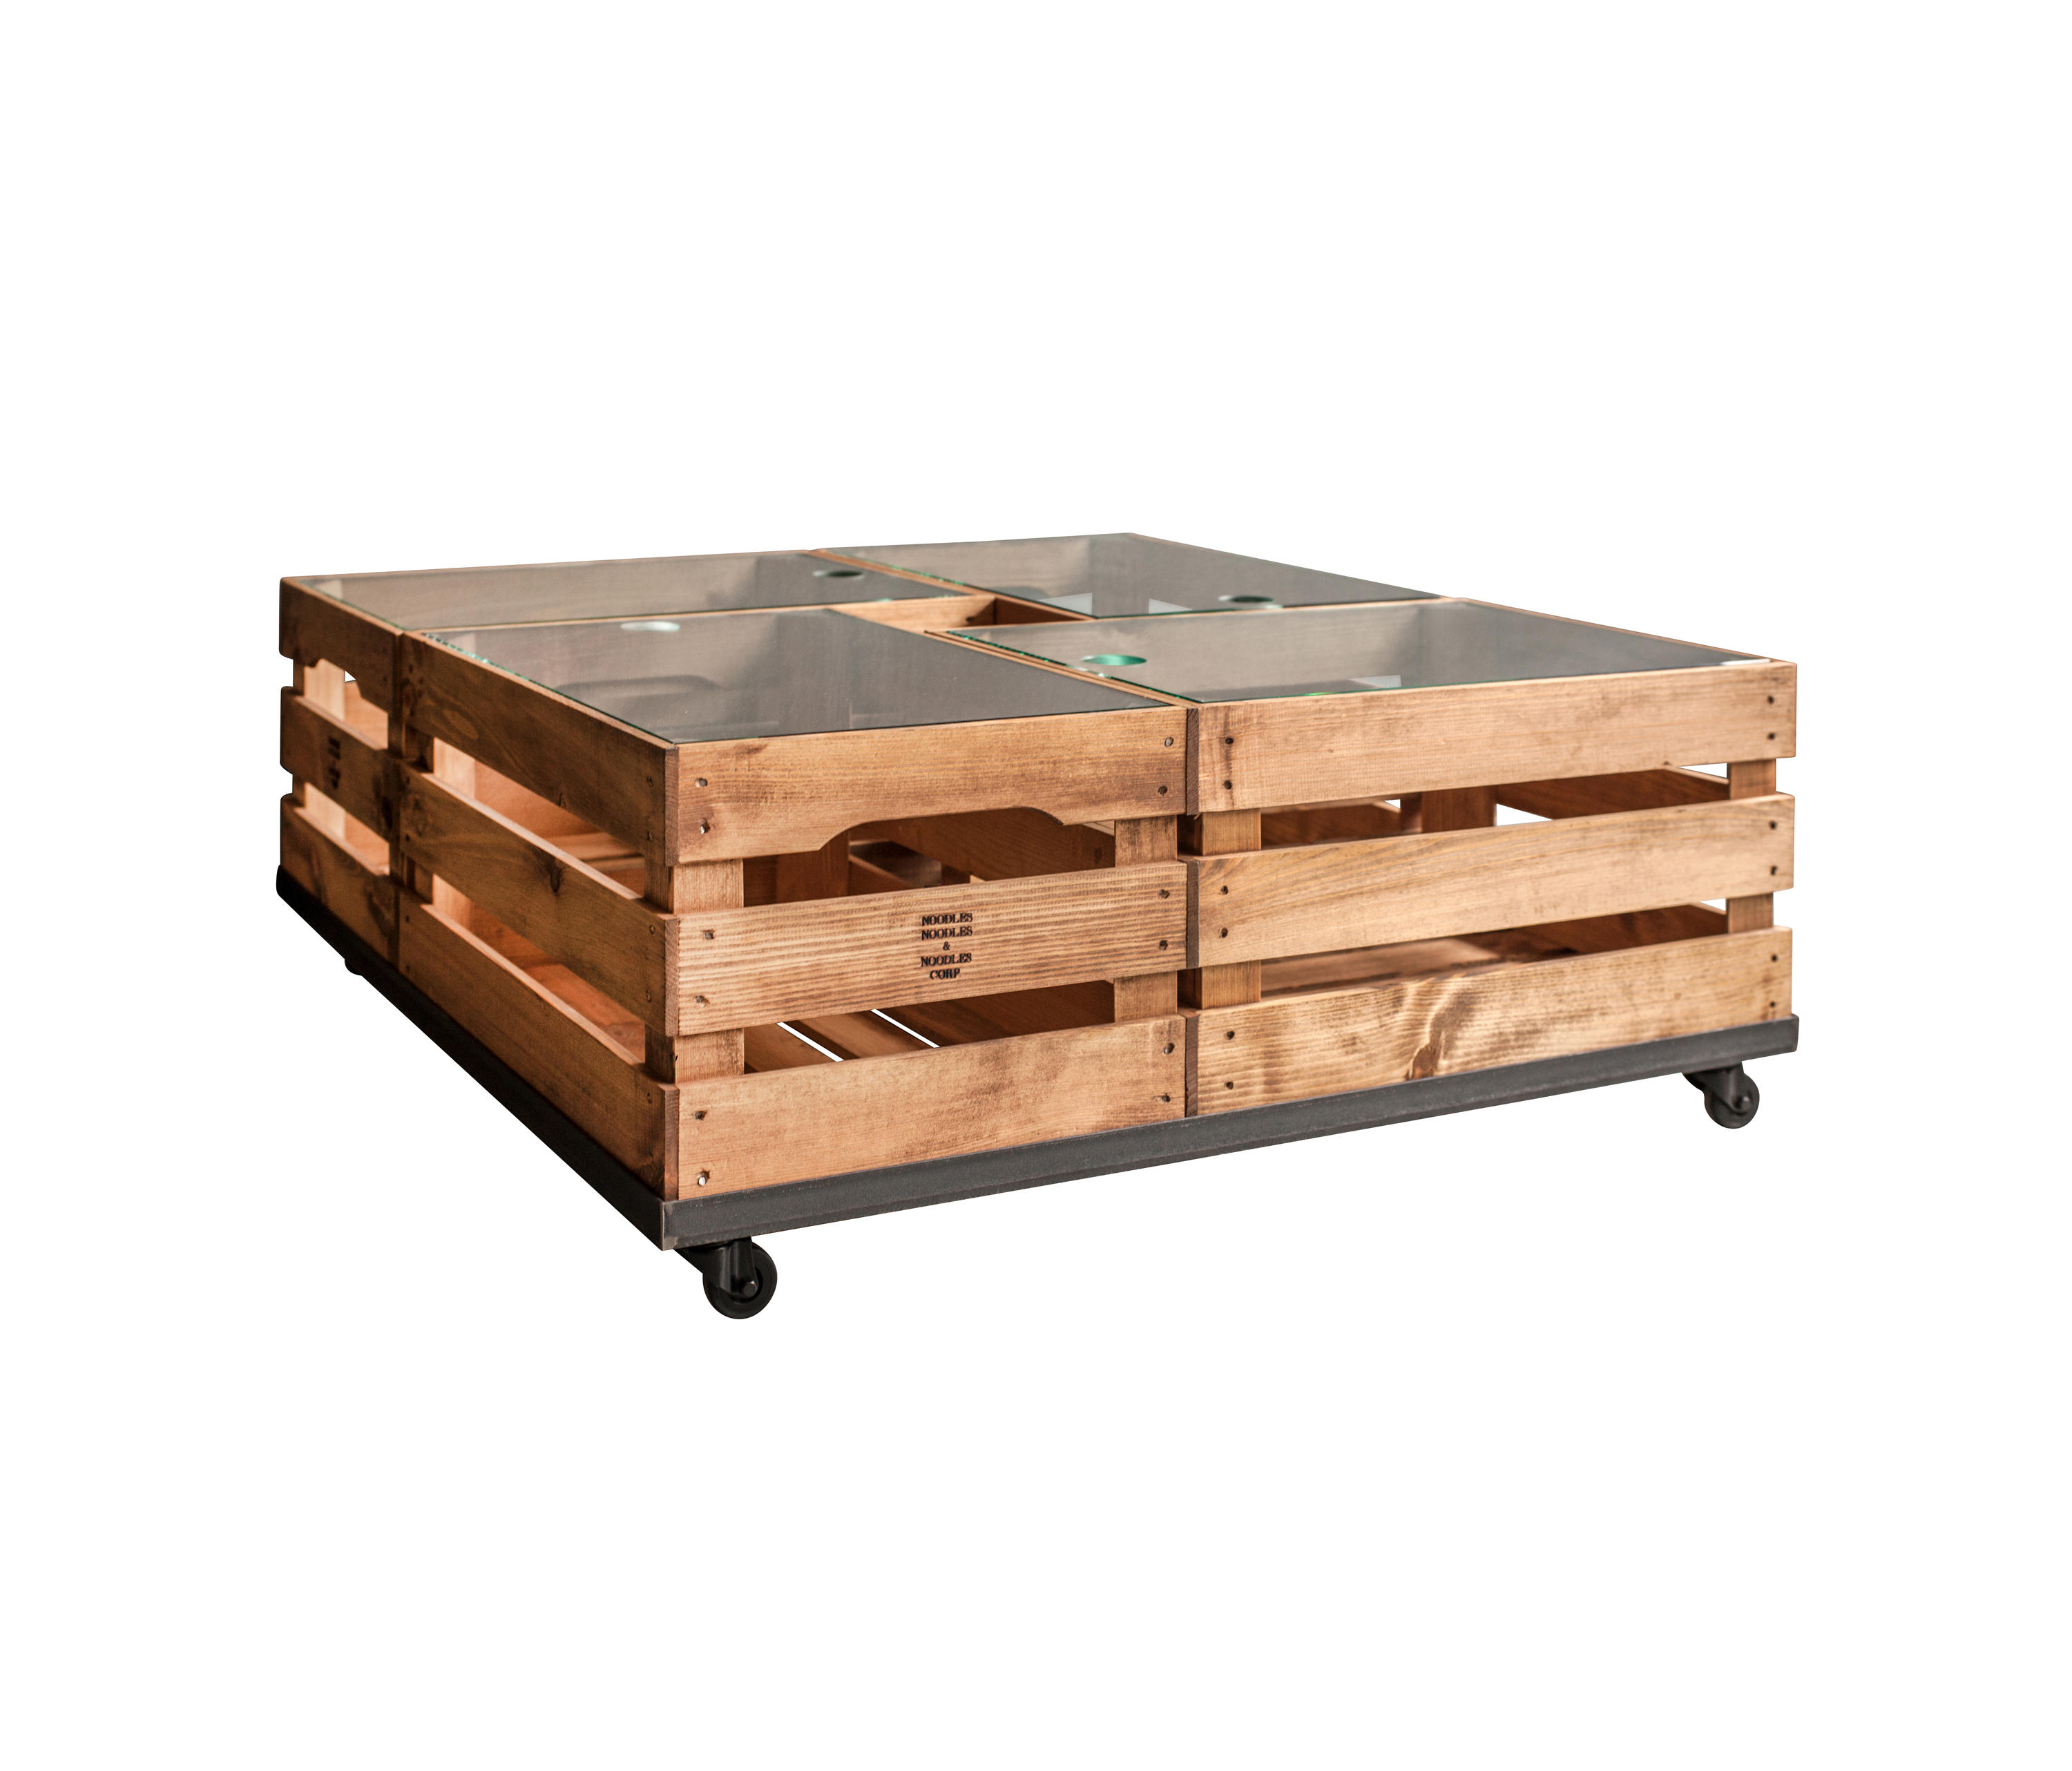 wooden crates glass table on wheels